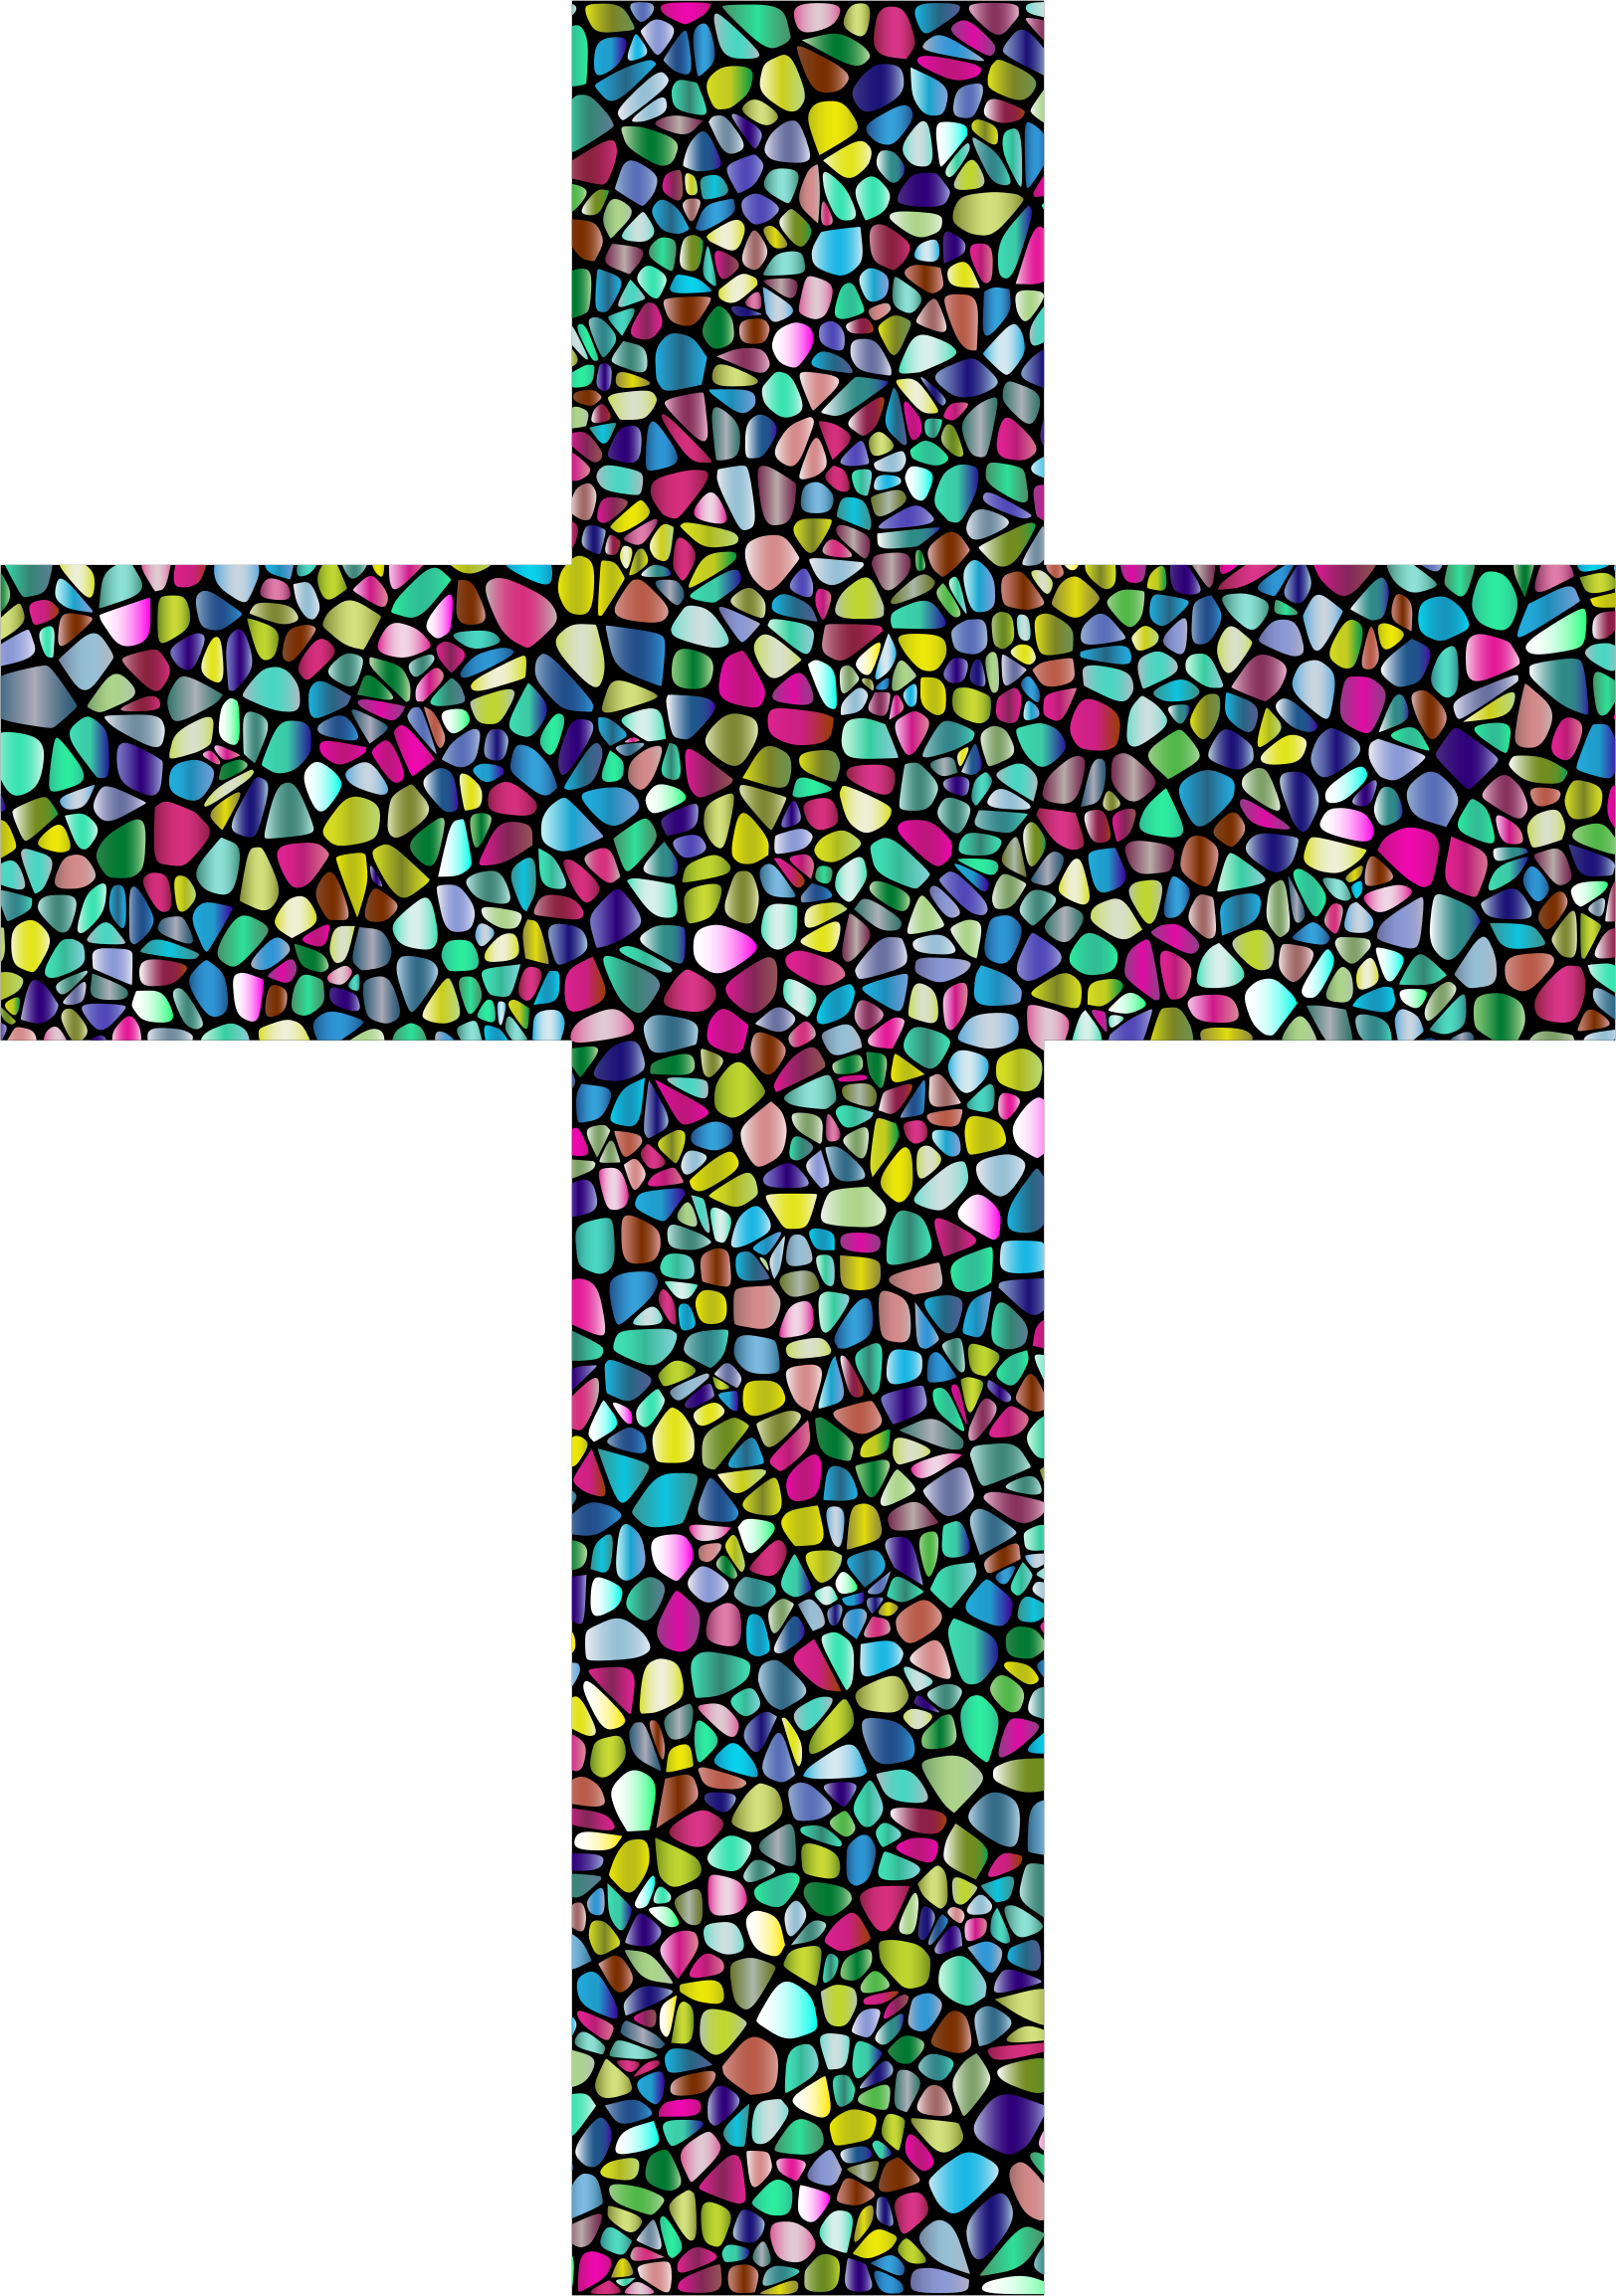 Polyprismatic Tiled Cross With Background by GDJ